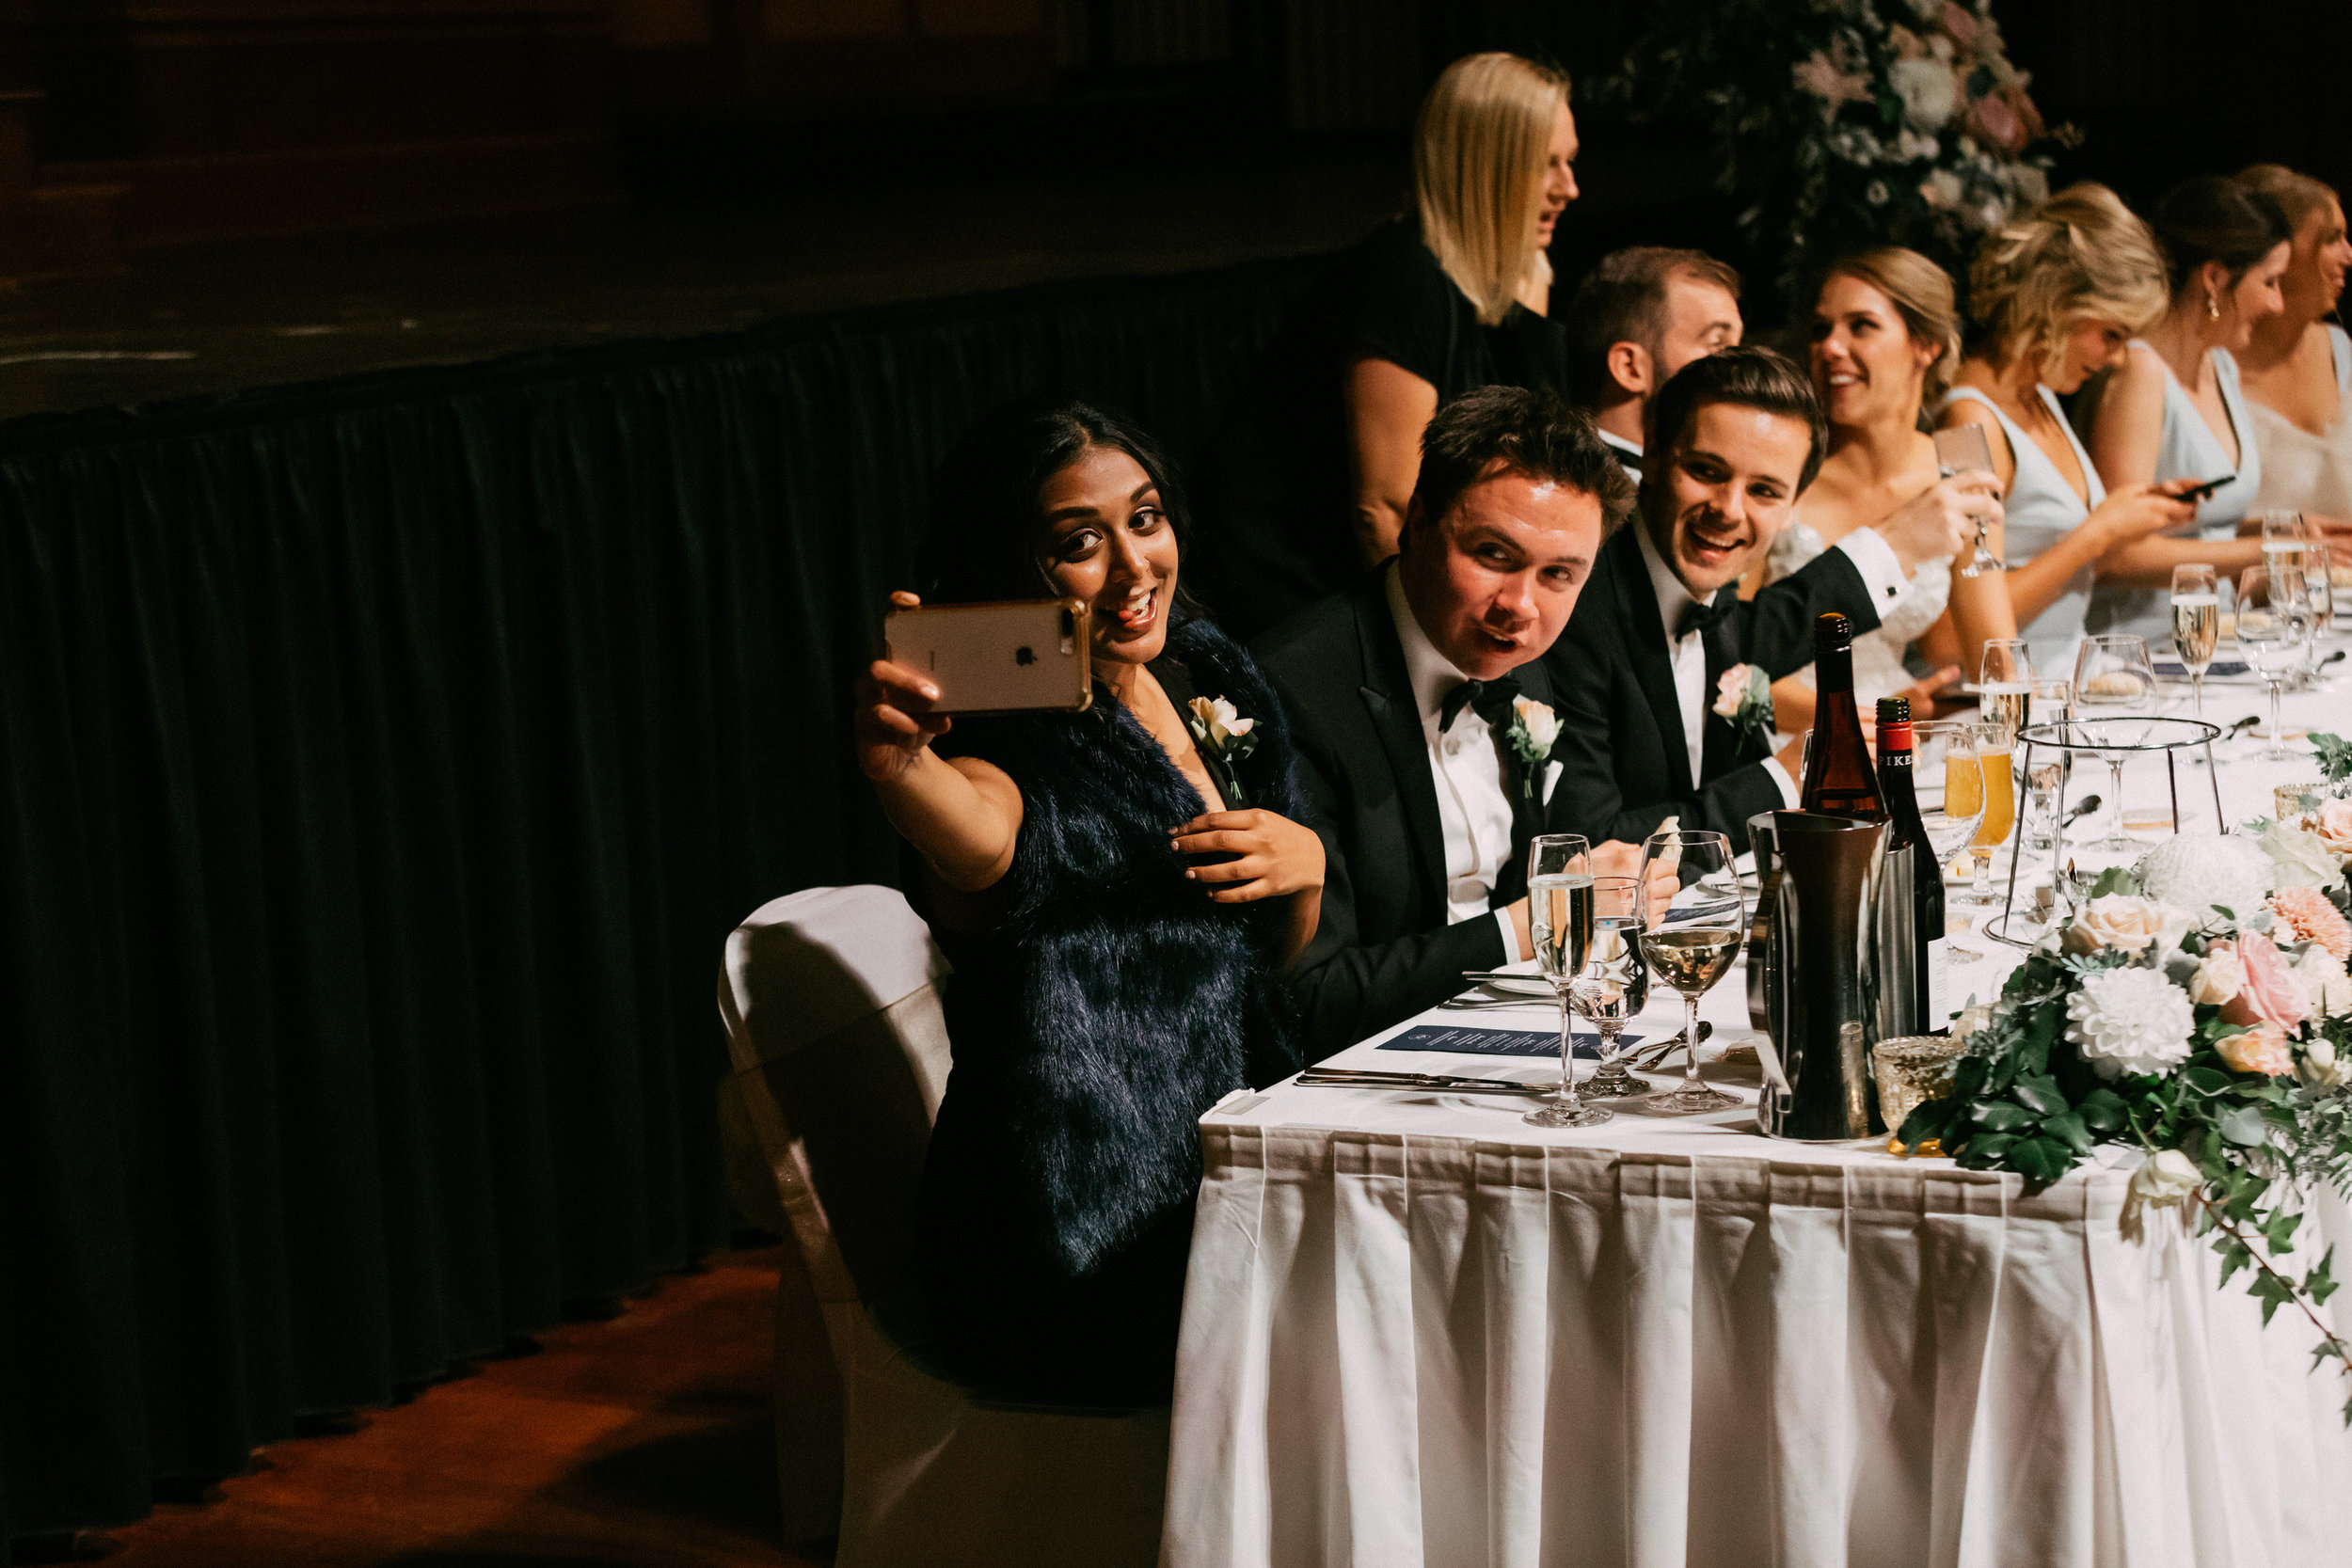 Adelaide Wedding 2019 157.jpg